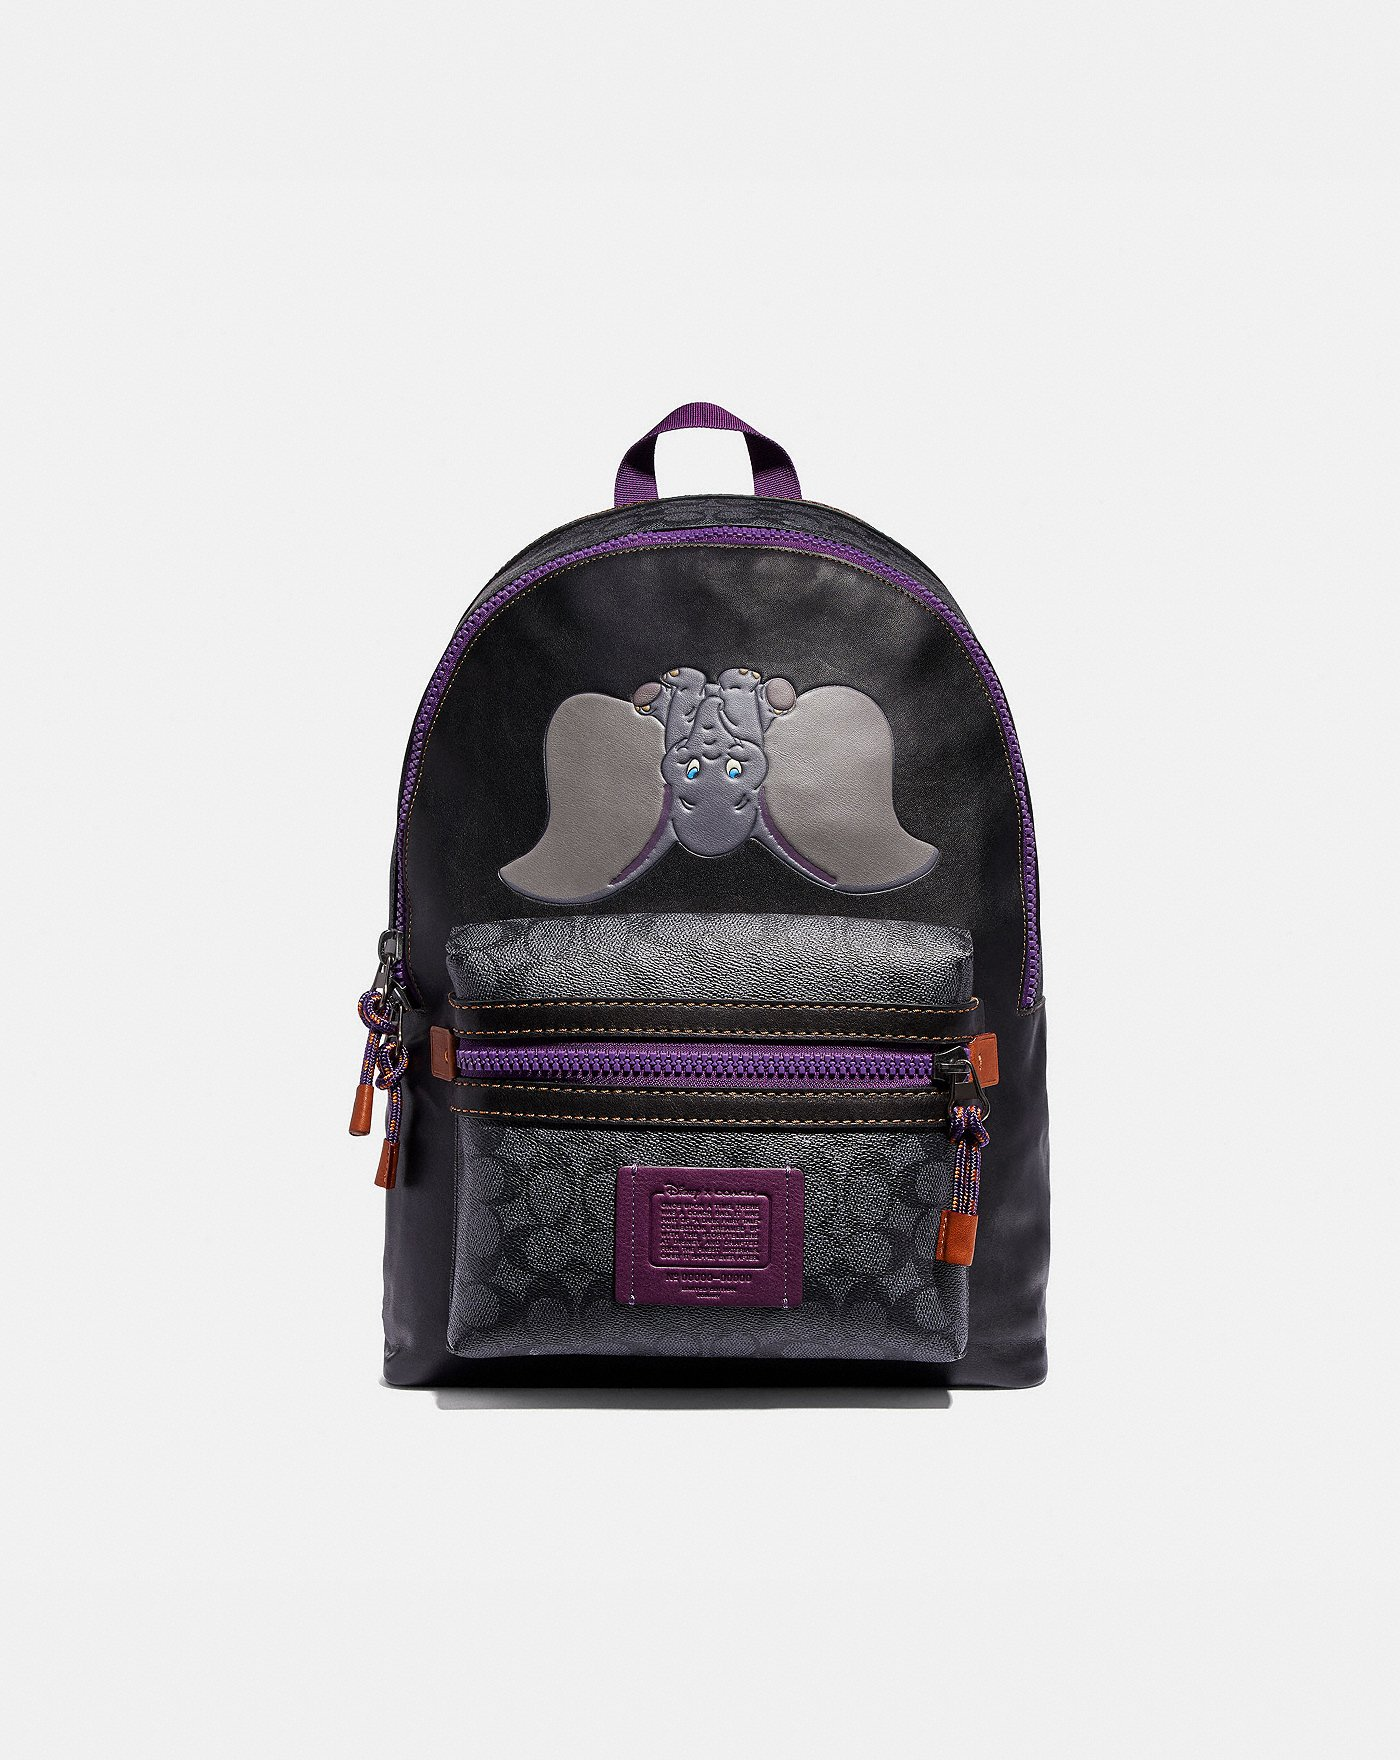 COACH  Disney X Coach Signature Academy Backpack With Dumbo 67da6d1589de4